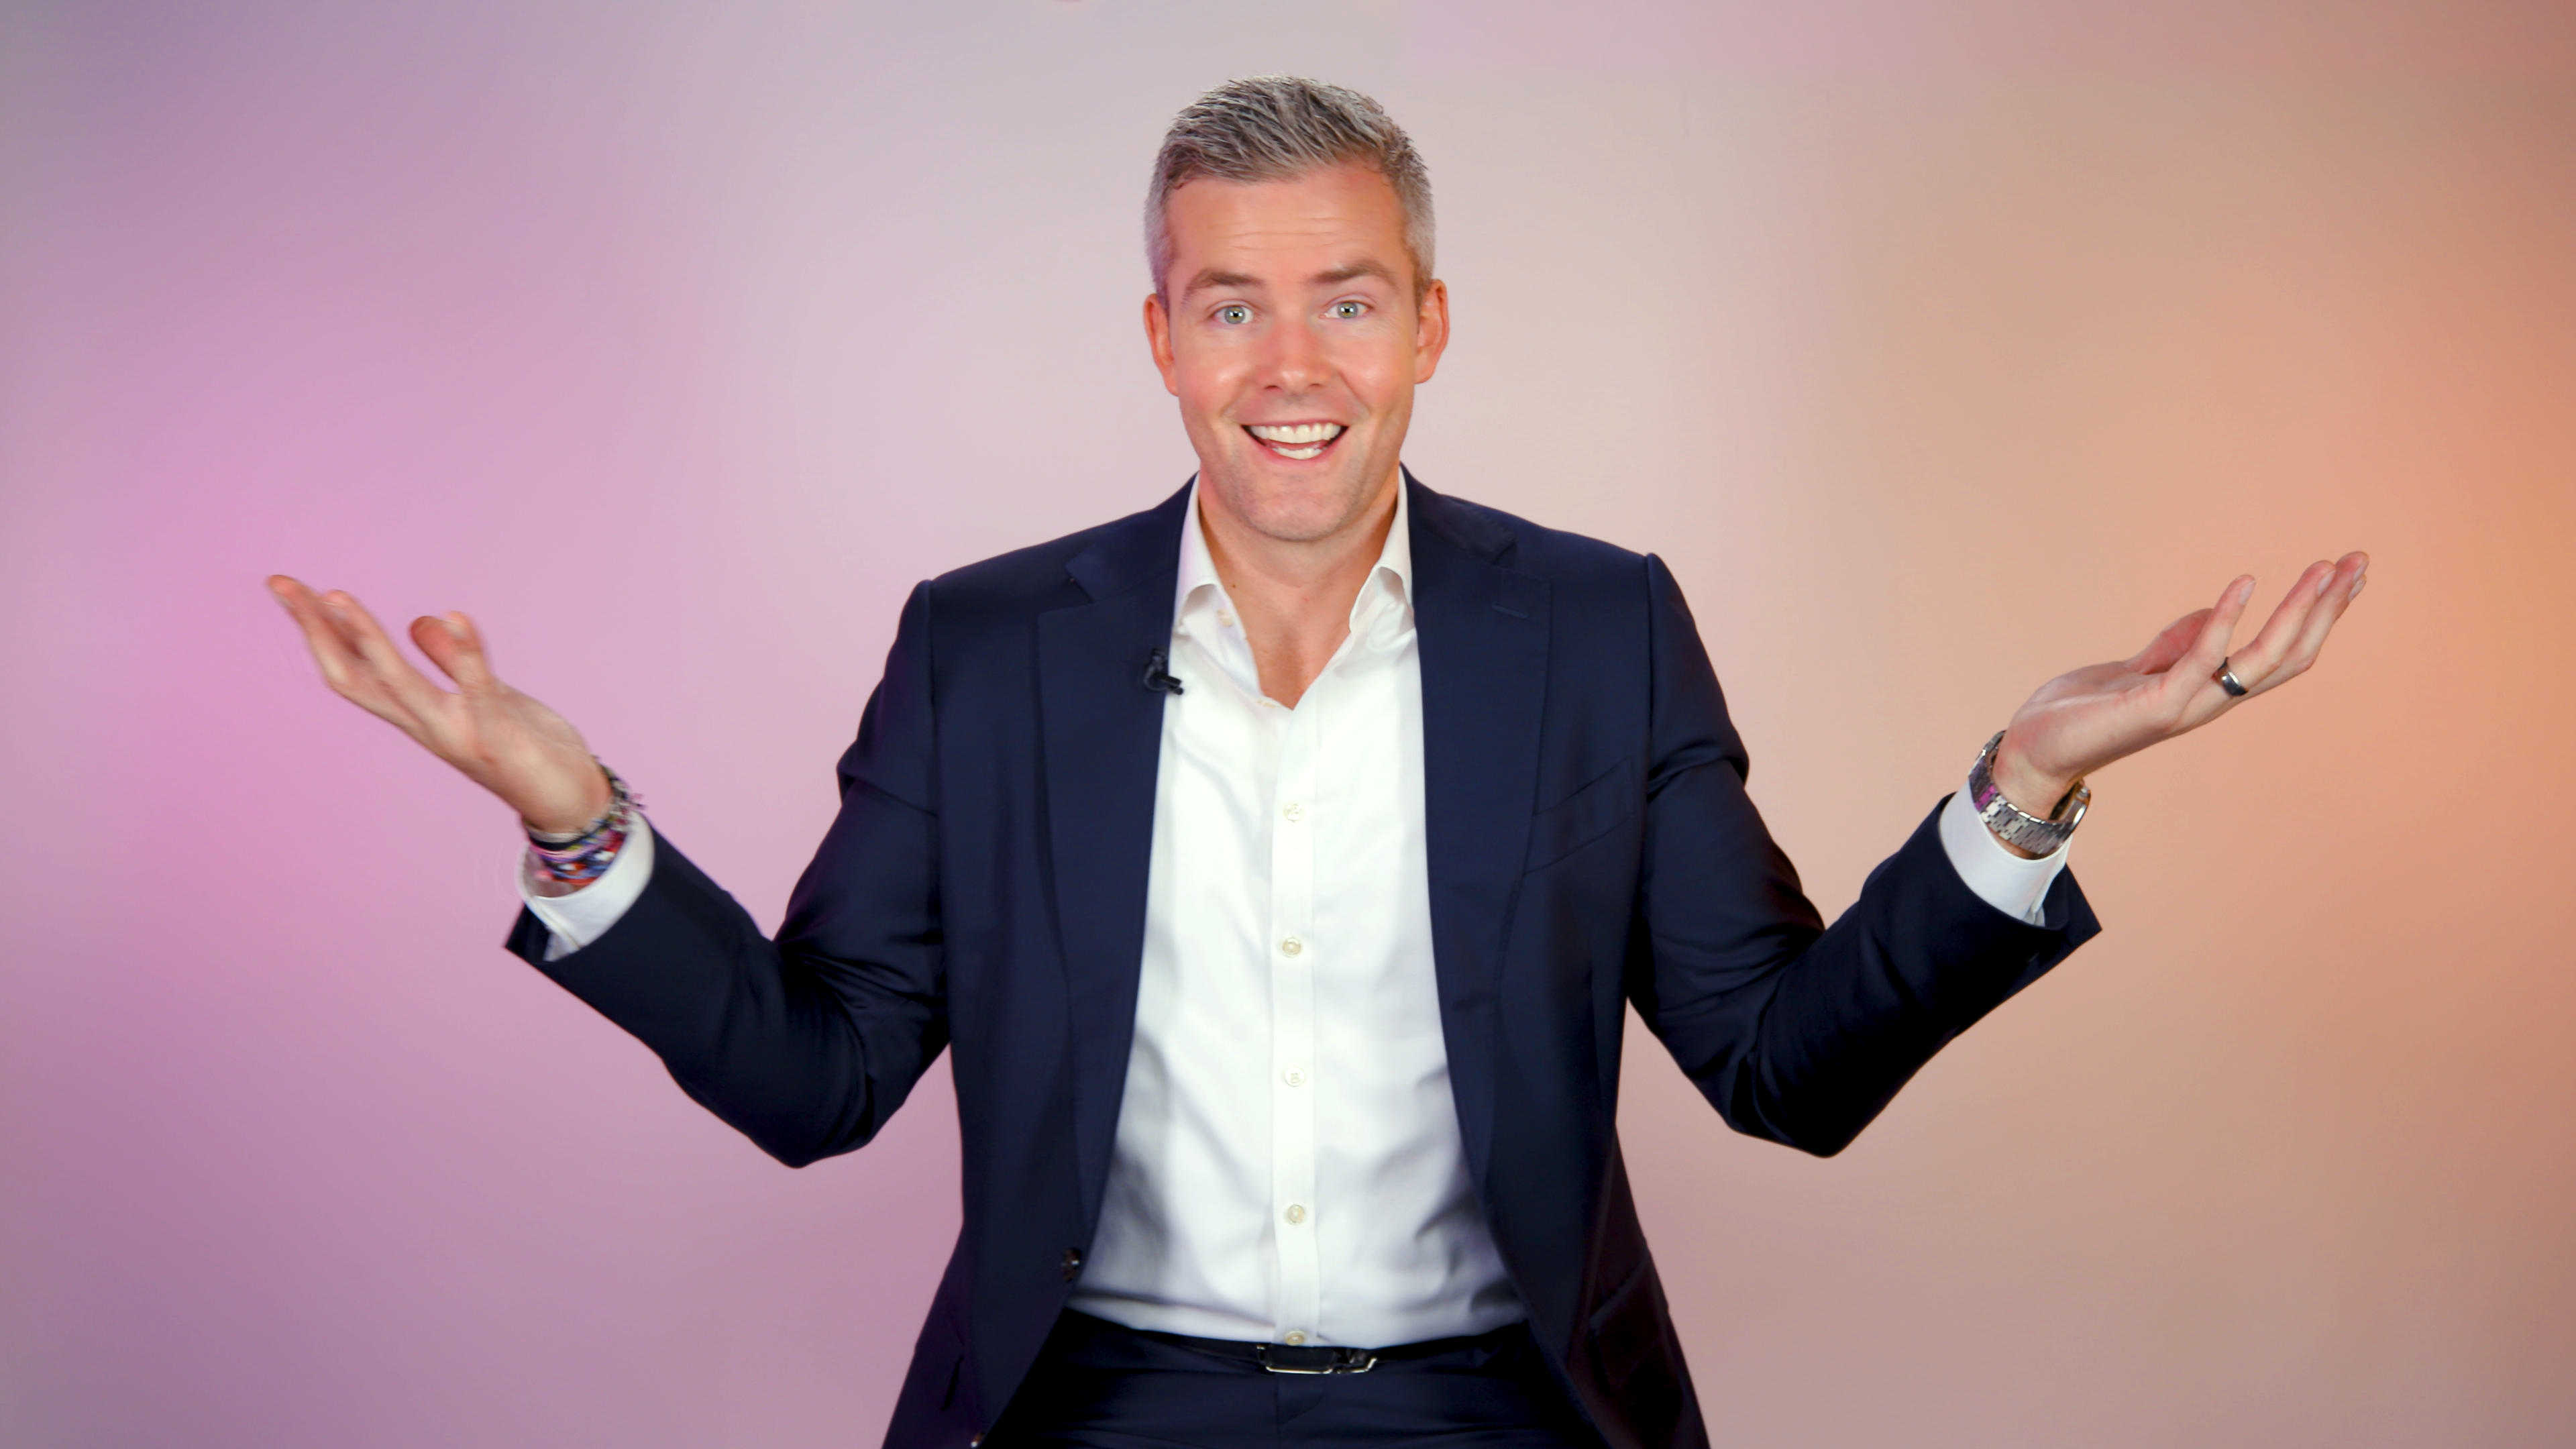 'Million Dollar Listing' star Ryan Serhant: The best piece of investing advice I ever got